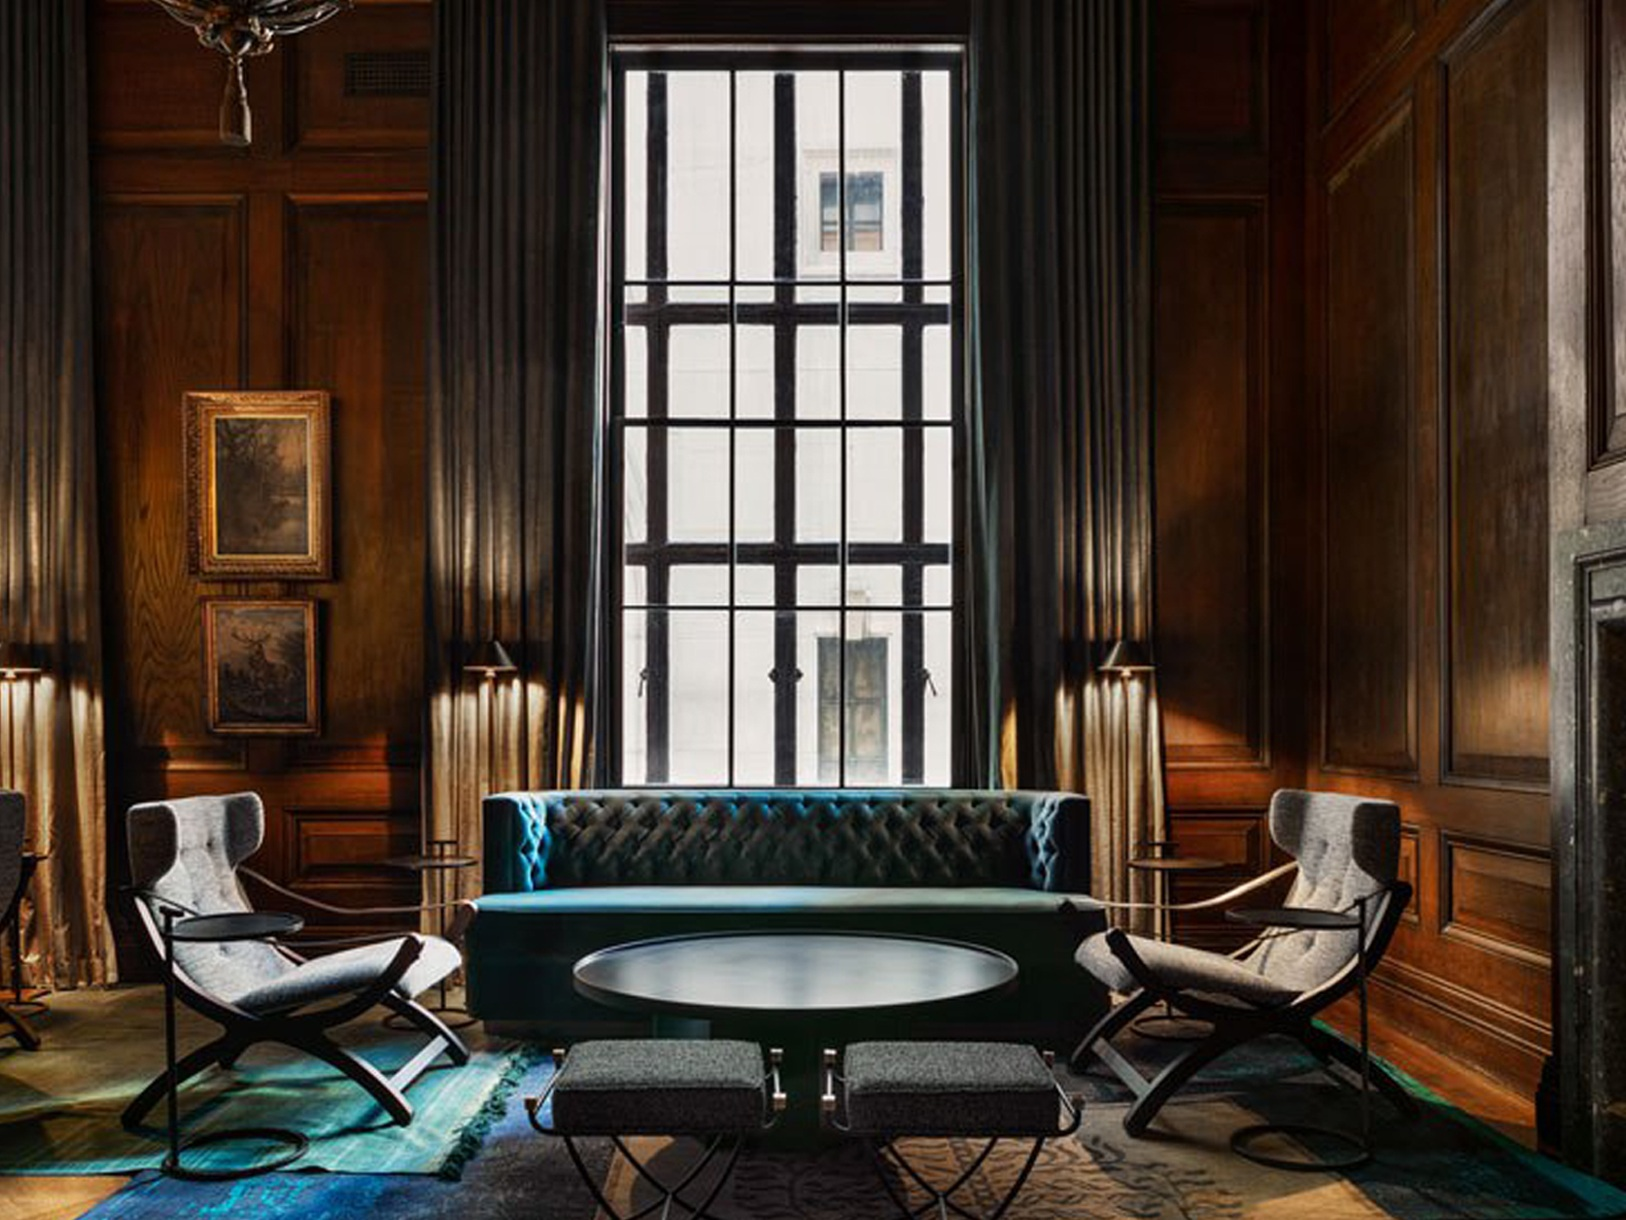 This New York City Residence Has Its Own Speakeasy - June 2nd, 2018 | Robb ReportReal estate is part pragmatism and part instinct. As developers of major residential projects have begun collaborating with top-tier designers and architects, they are getting more than headline-making buzz …Read More